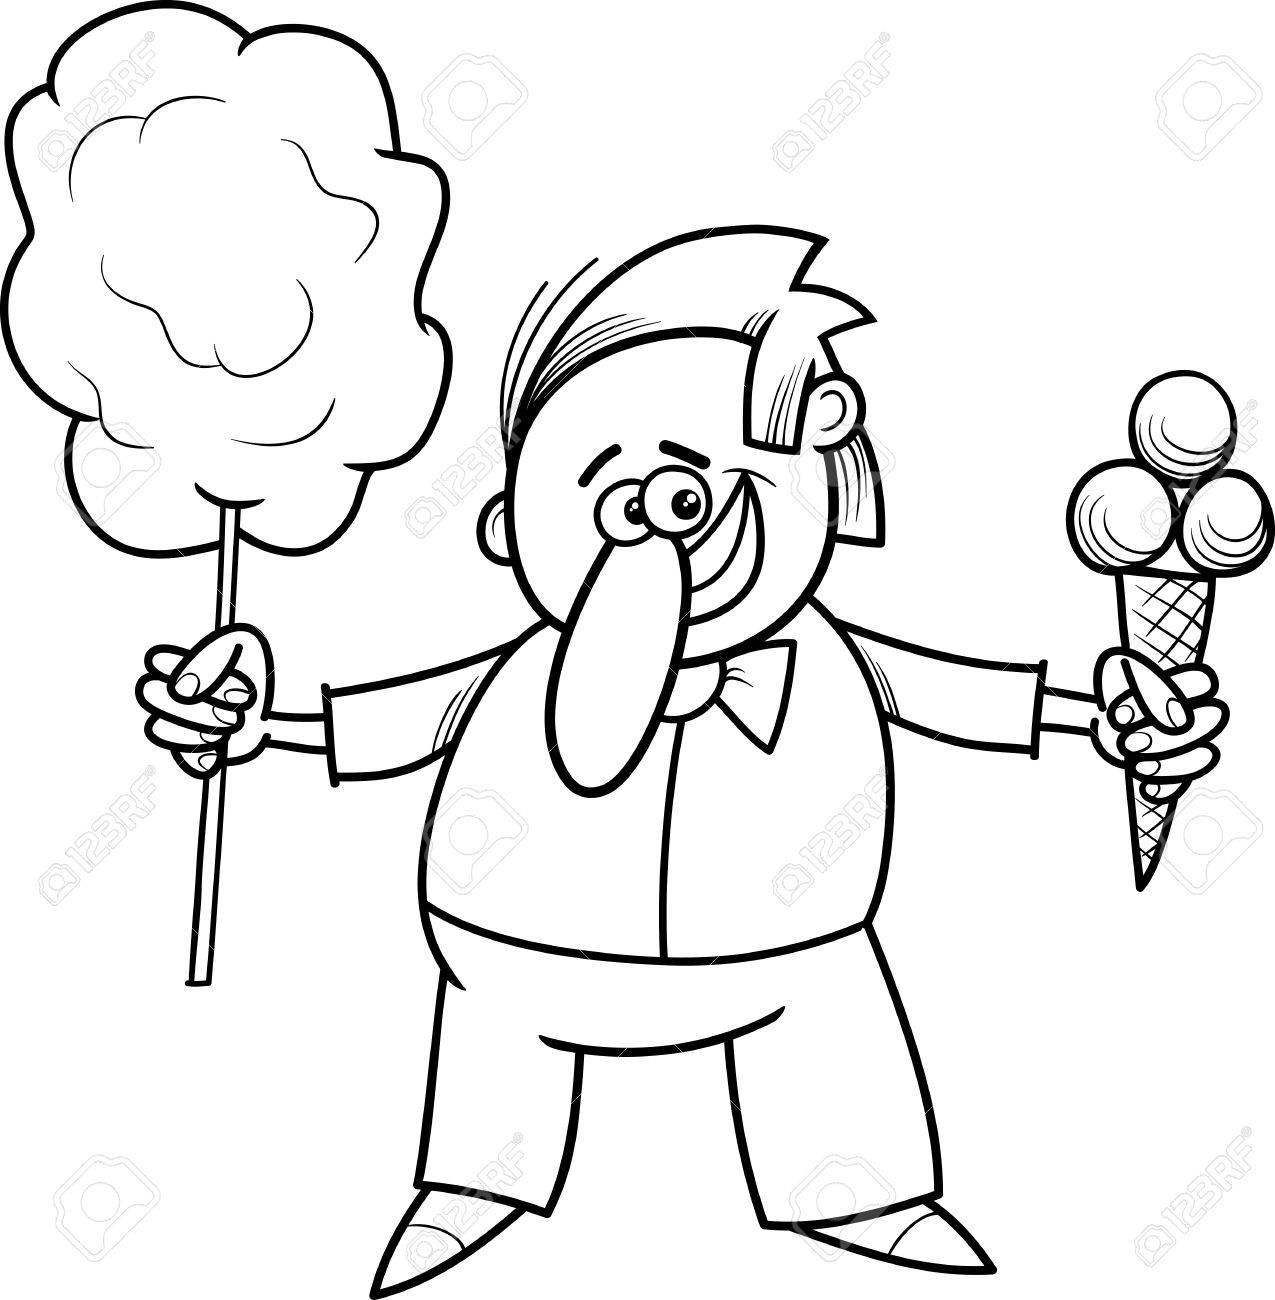 Black And White Cartoon Illustration Of Ice Cream And Candy Floss ...